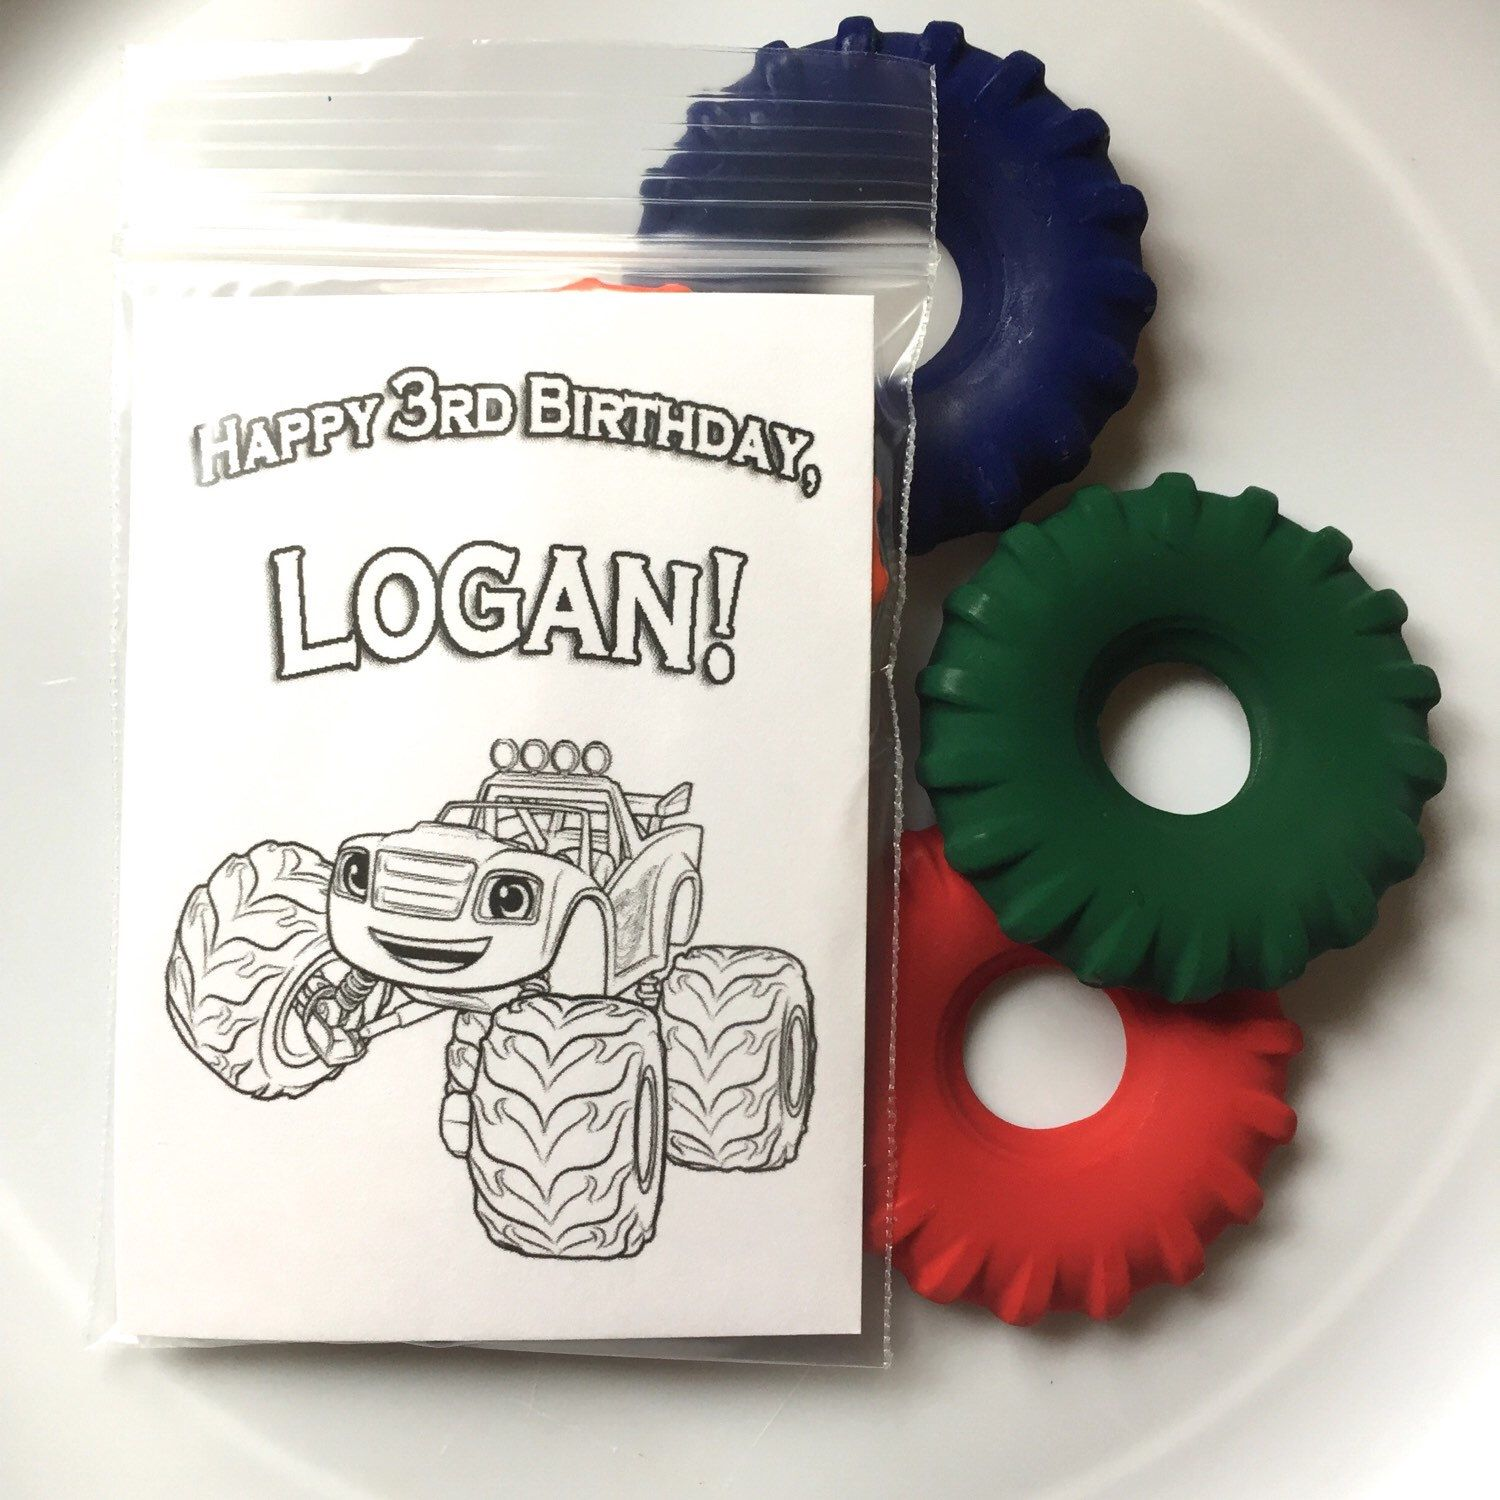 Blaze and the Monster Machines Party Favor Tire Shaped Crayon Packs - Art supplies or Birthday Party craft ideas and favors by ImageOak on Etsy https://www.etsy.com/listing/270812433/blaze-and-the-monster-machines-party